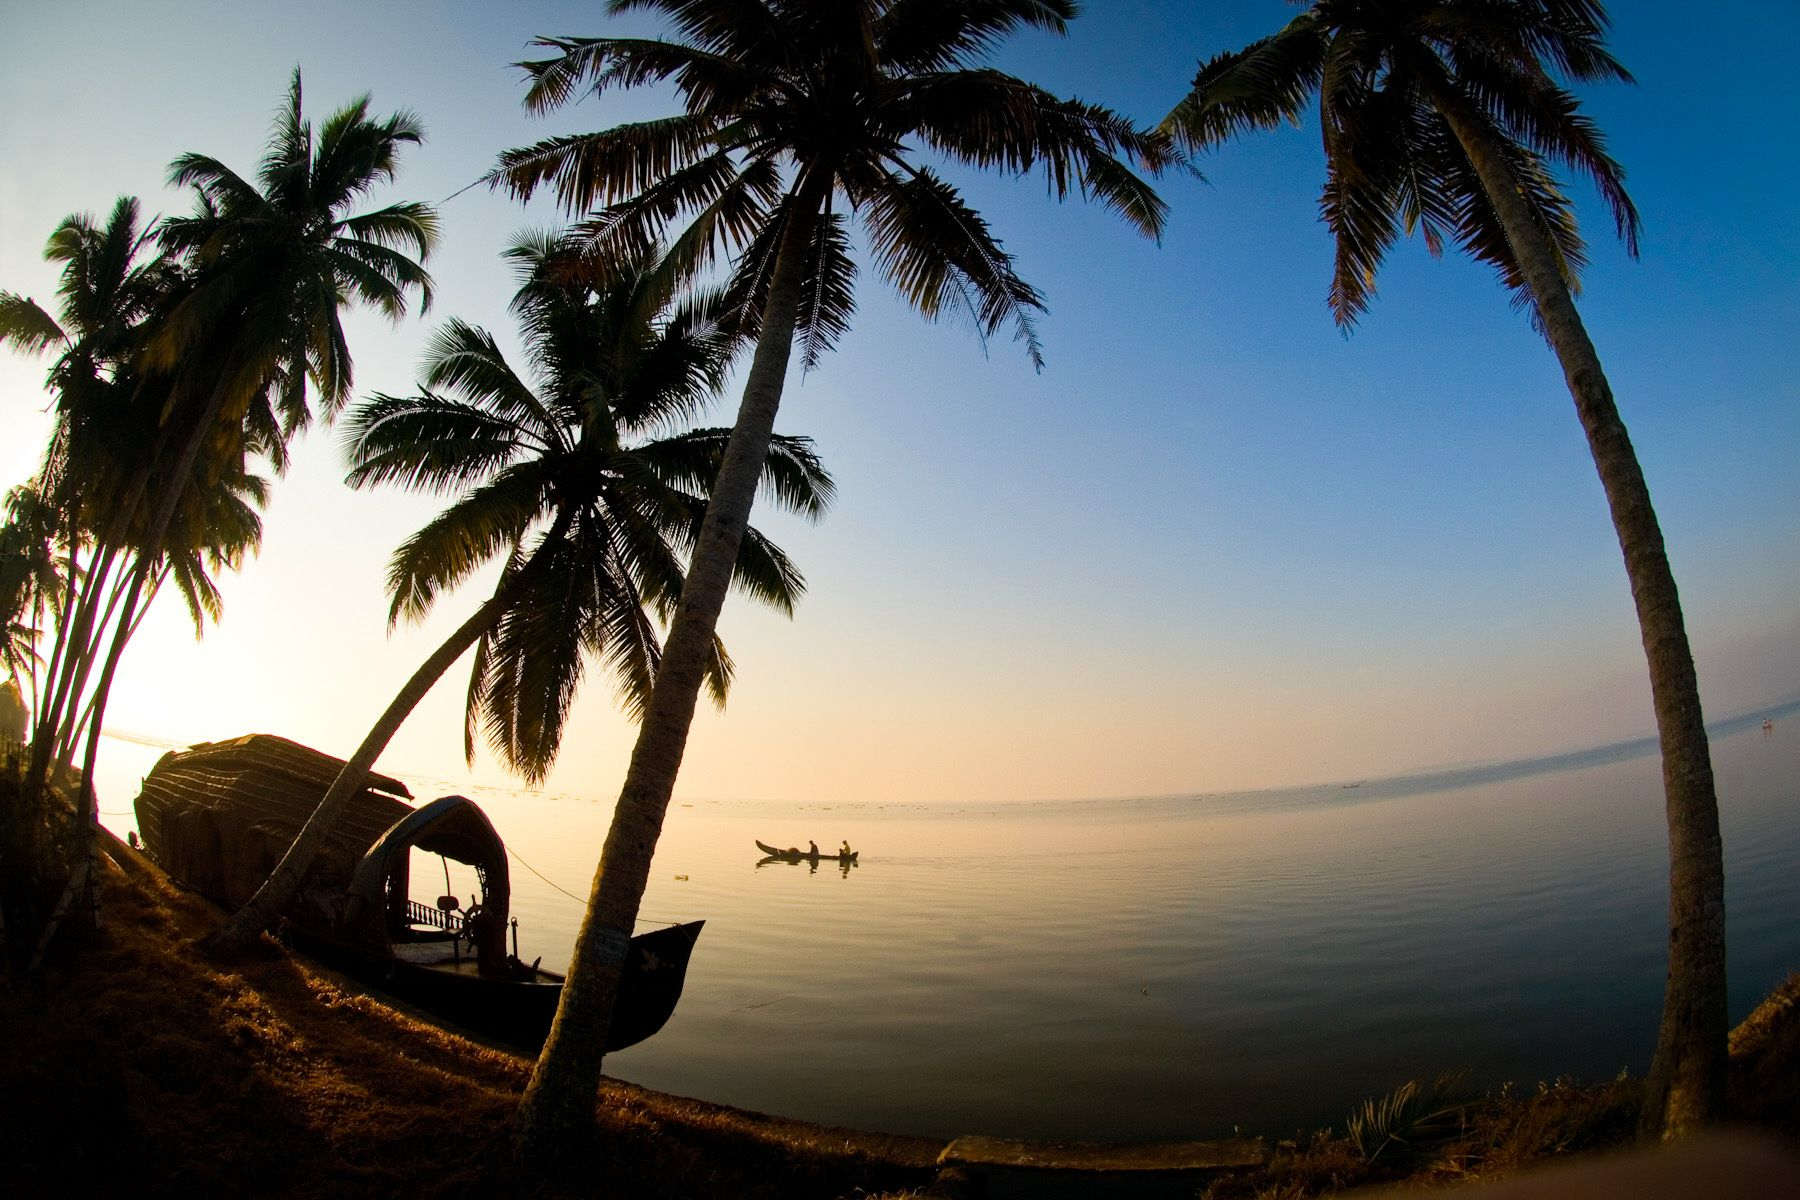 Backwaters of Kerela (India)